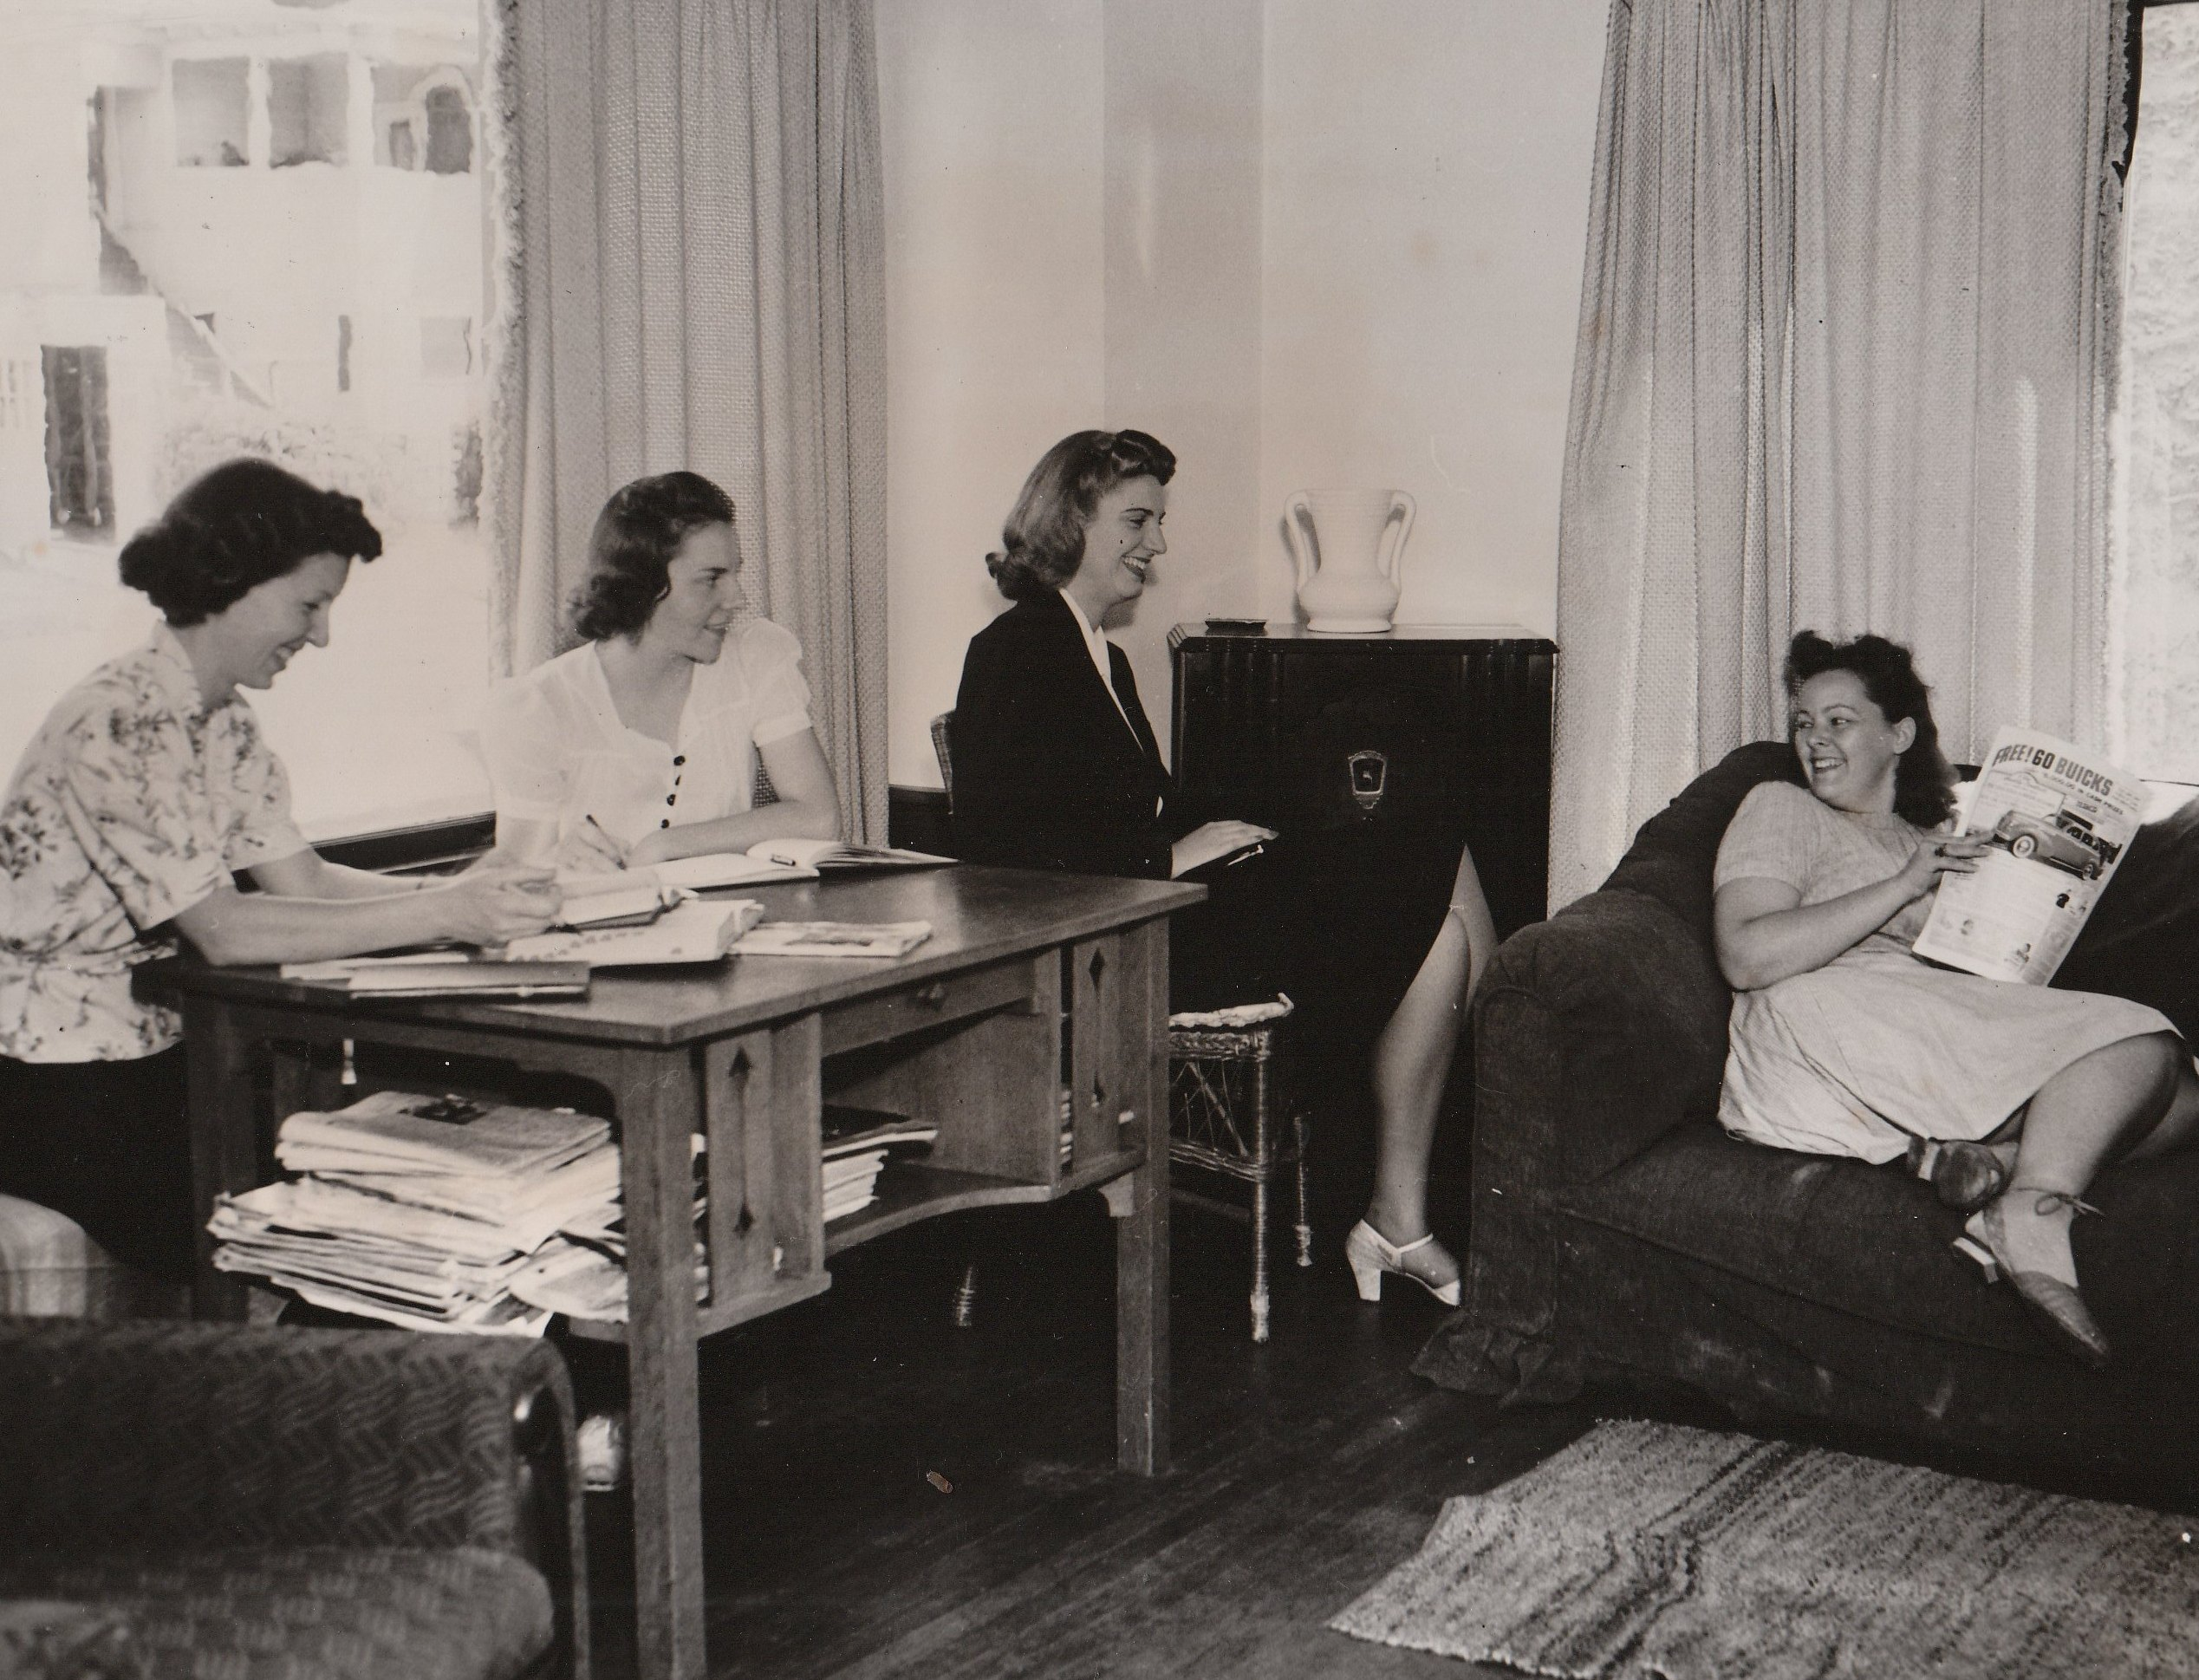 At this NYA resident project in Berkeley, California, young women enjoy the opportunity to socialize and network in between their studies. Photo courtesy of the National Archives (ca. 1935-1943).